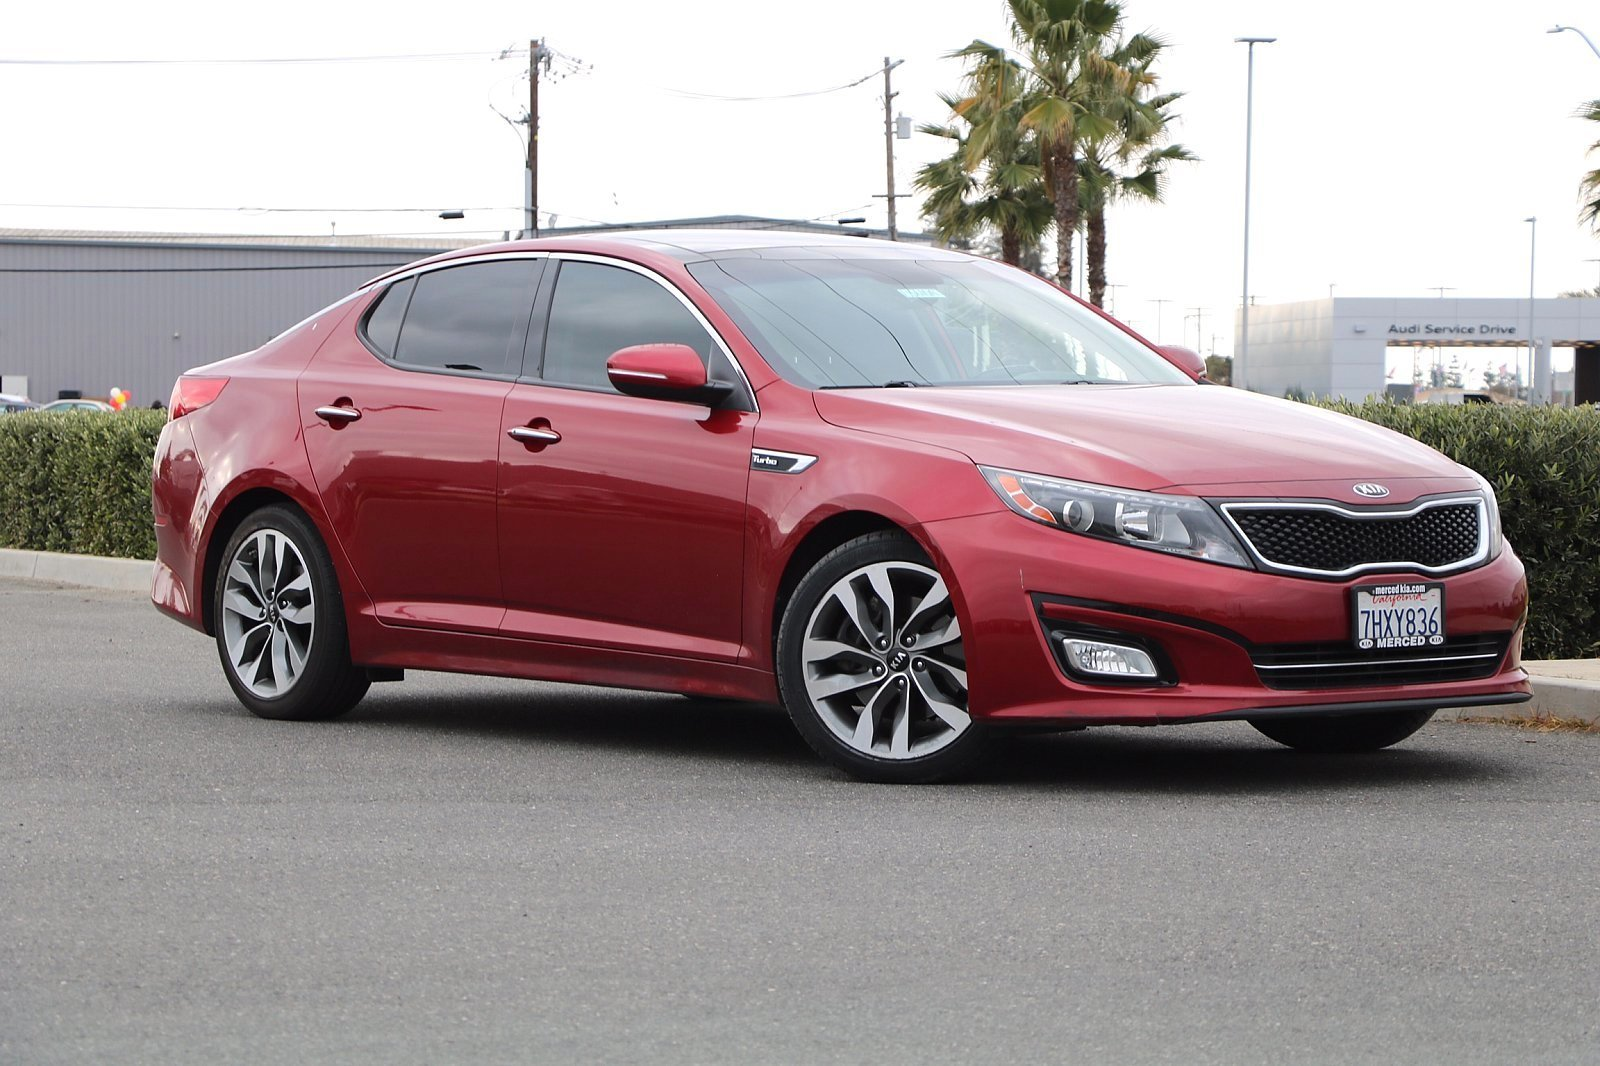 Pre-Owned 2014 Kia Optima SX Turbo